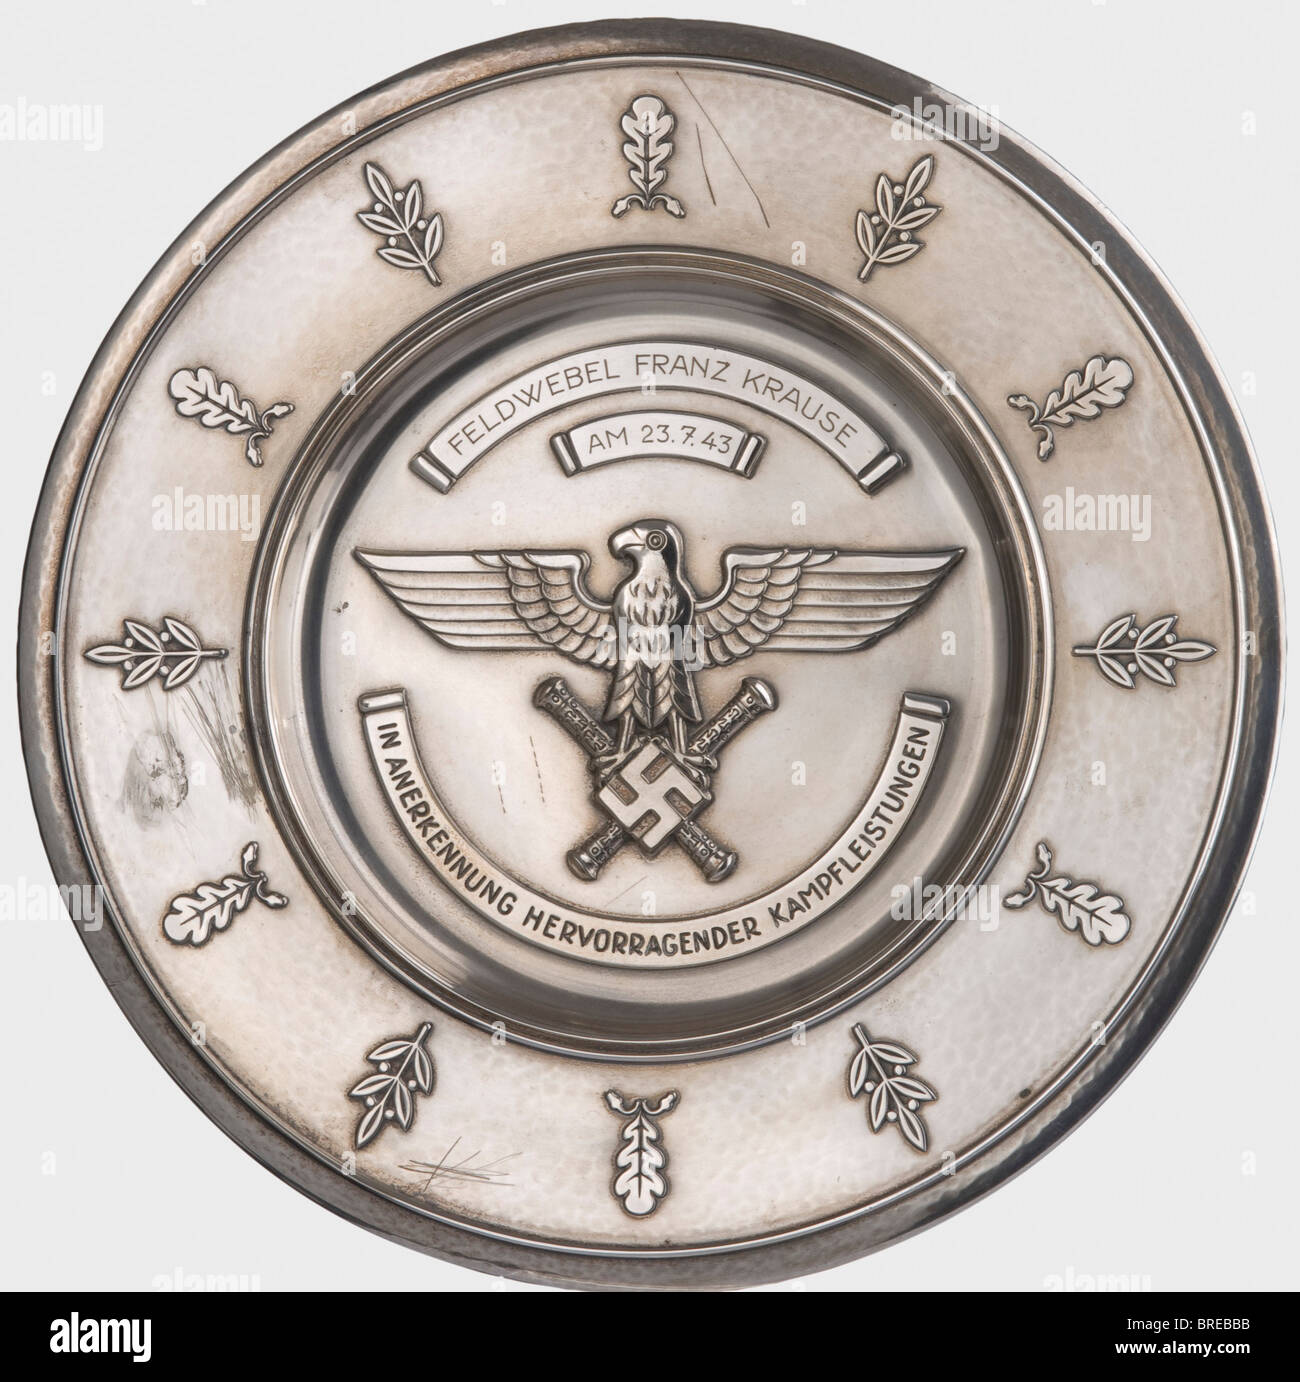 A Luftwaffe honour salver for outstanding conduct in combat, to Feldwebel Franz Krause on July 23, 1943 Recess-stamped, - Stock Image